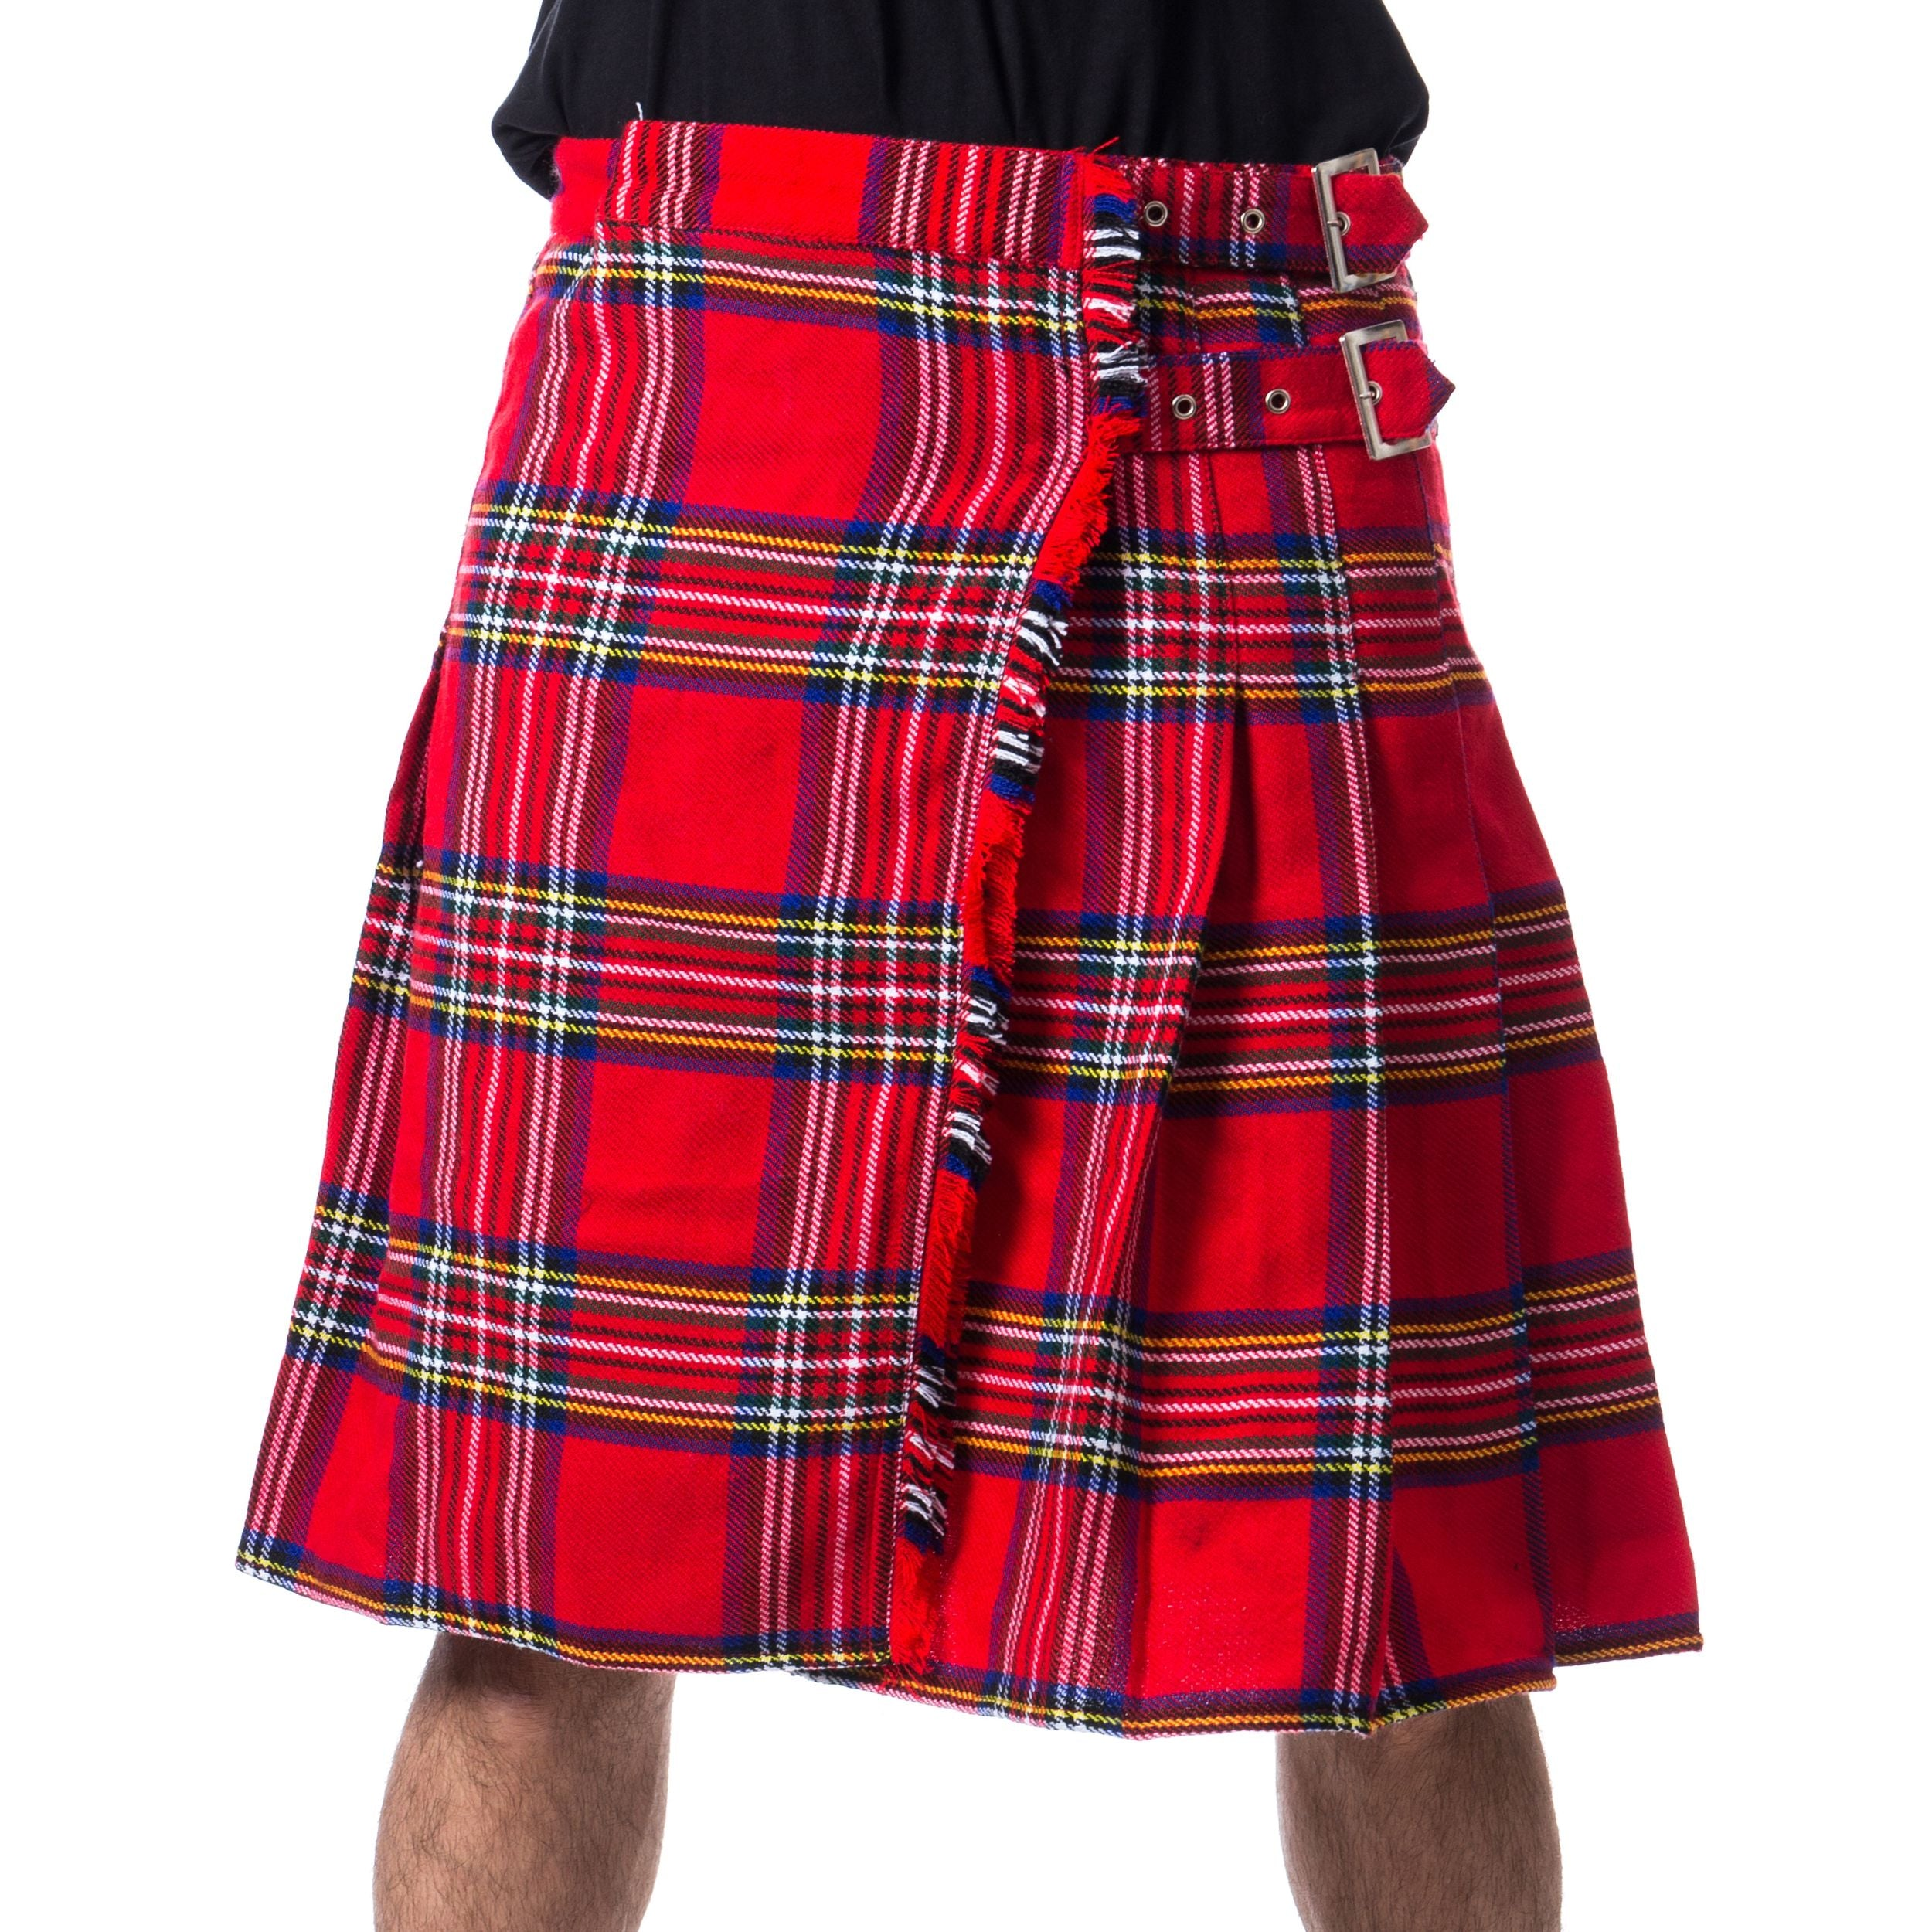 Kilt Poizen Industries - Chor